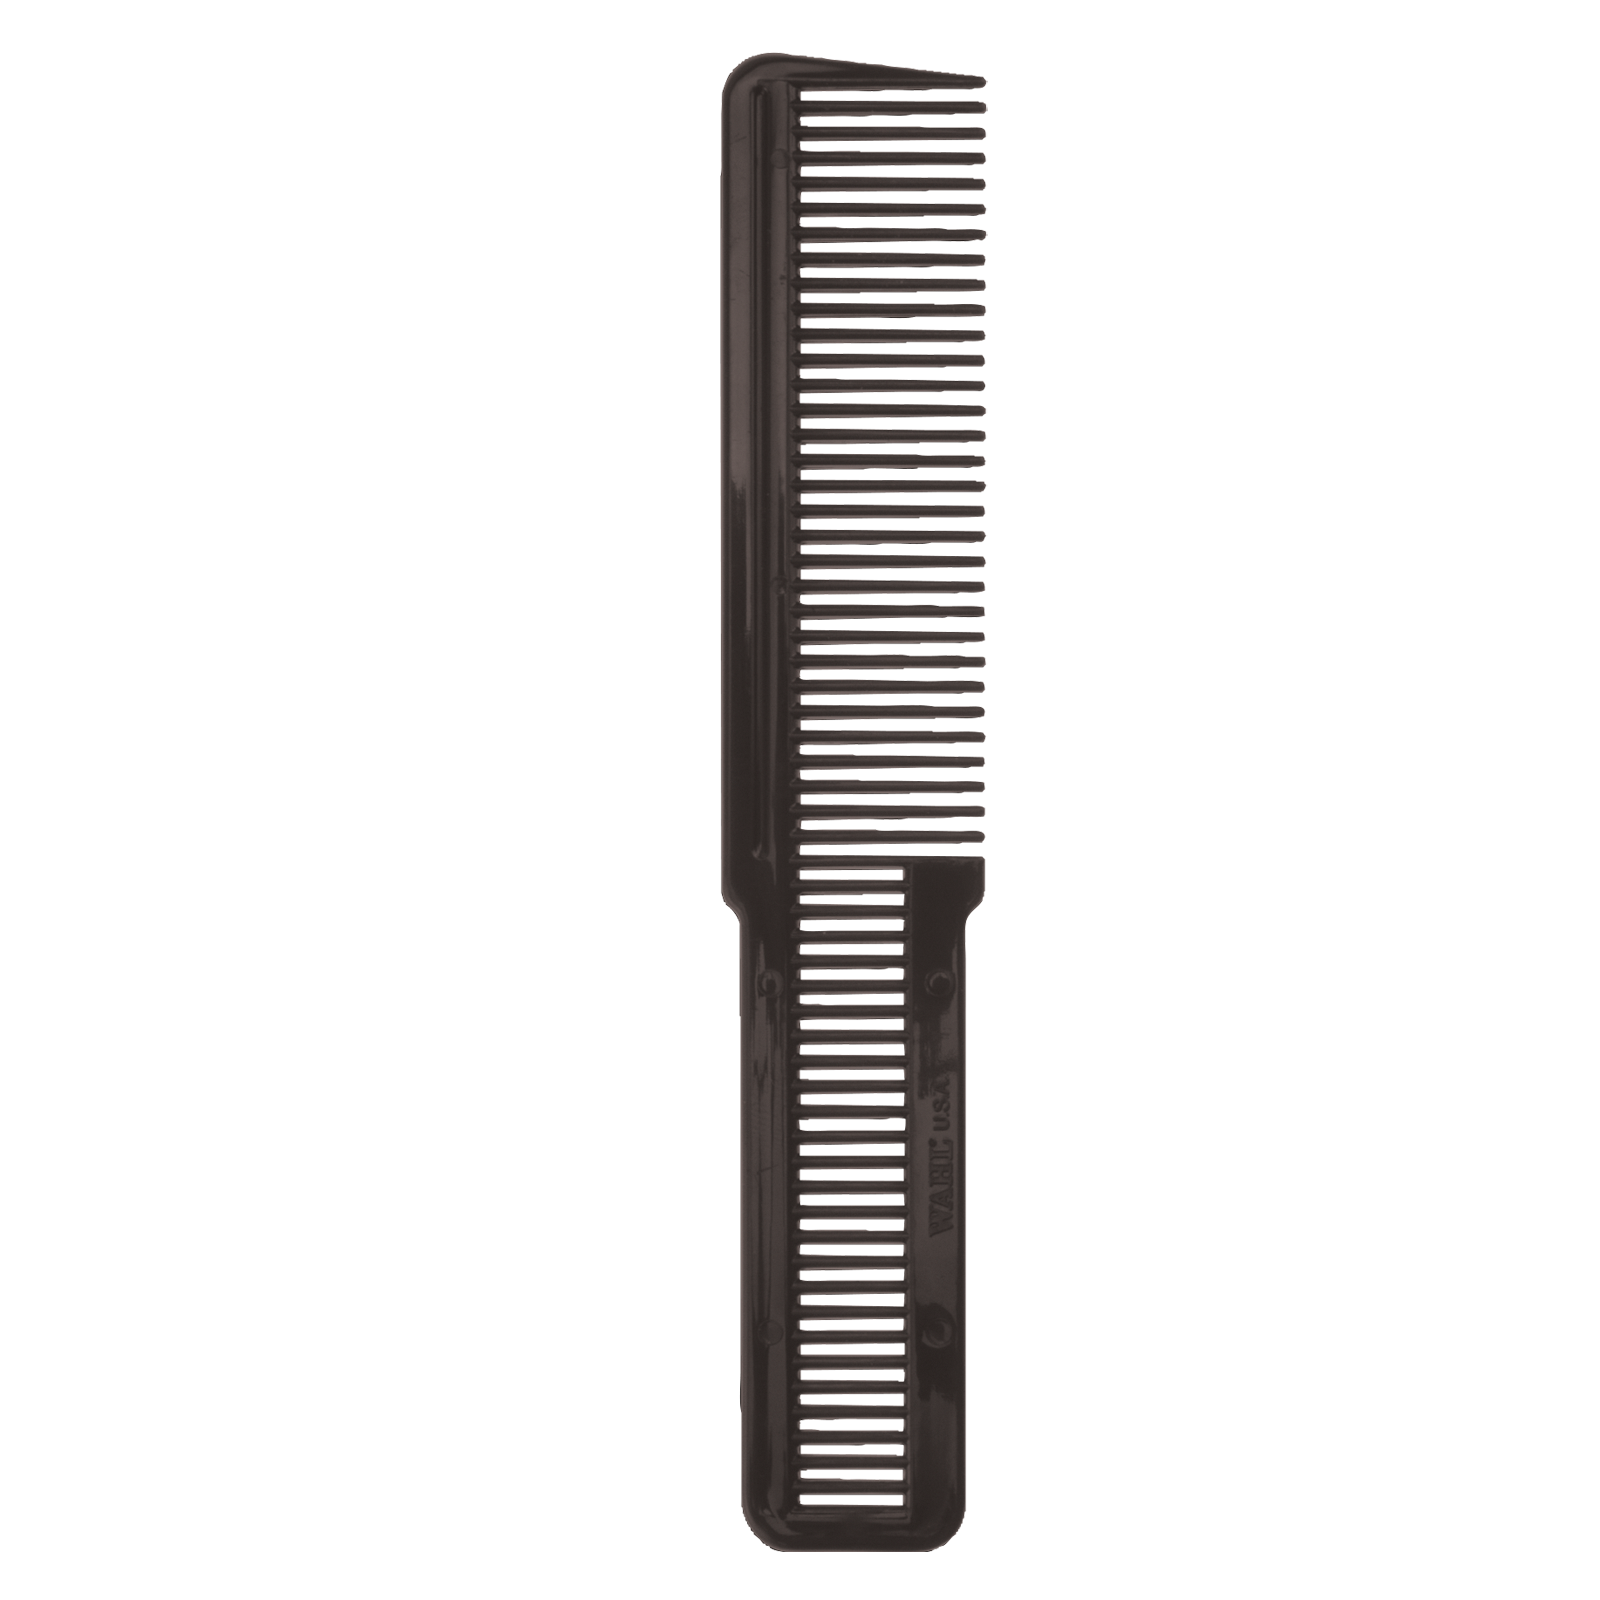 Black Clipper Comb 53191